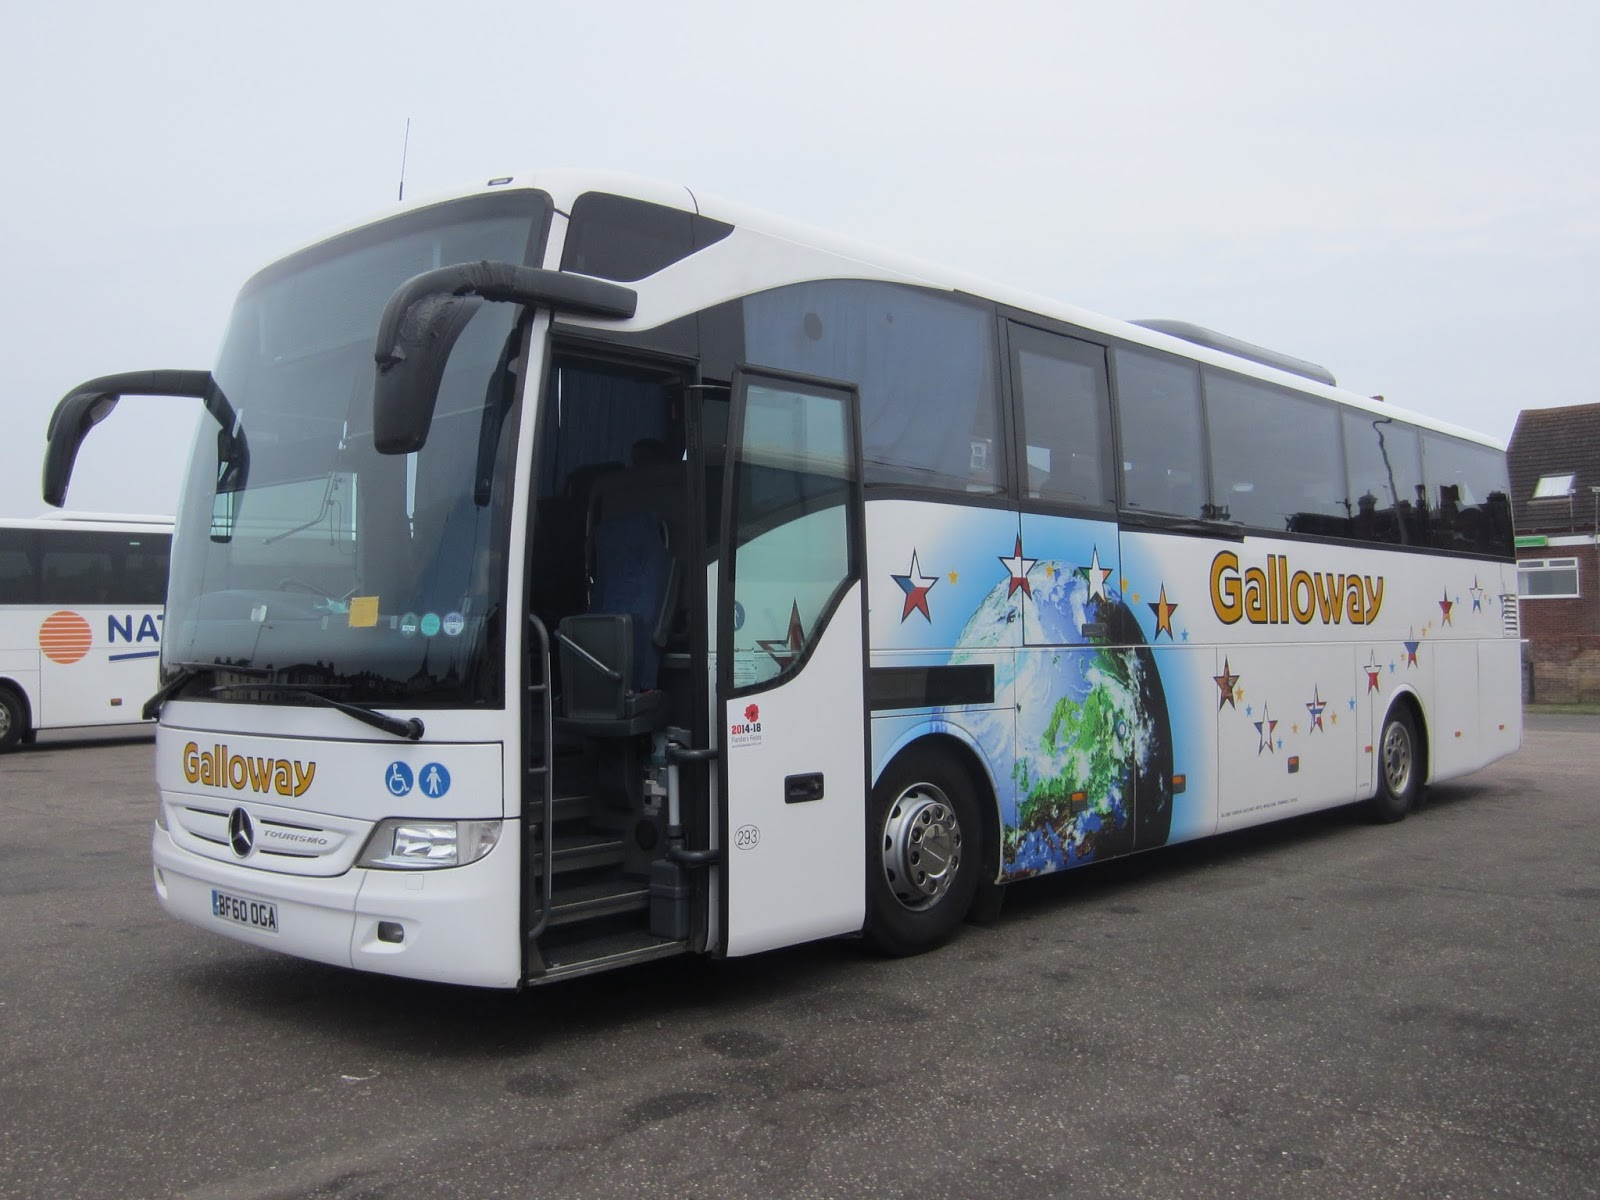 East norfolk and east suffolk bus blog galloway group to be acquired - National express head office number ...